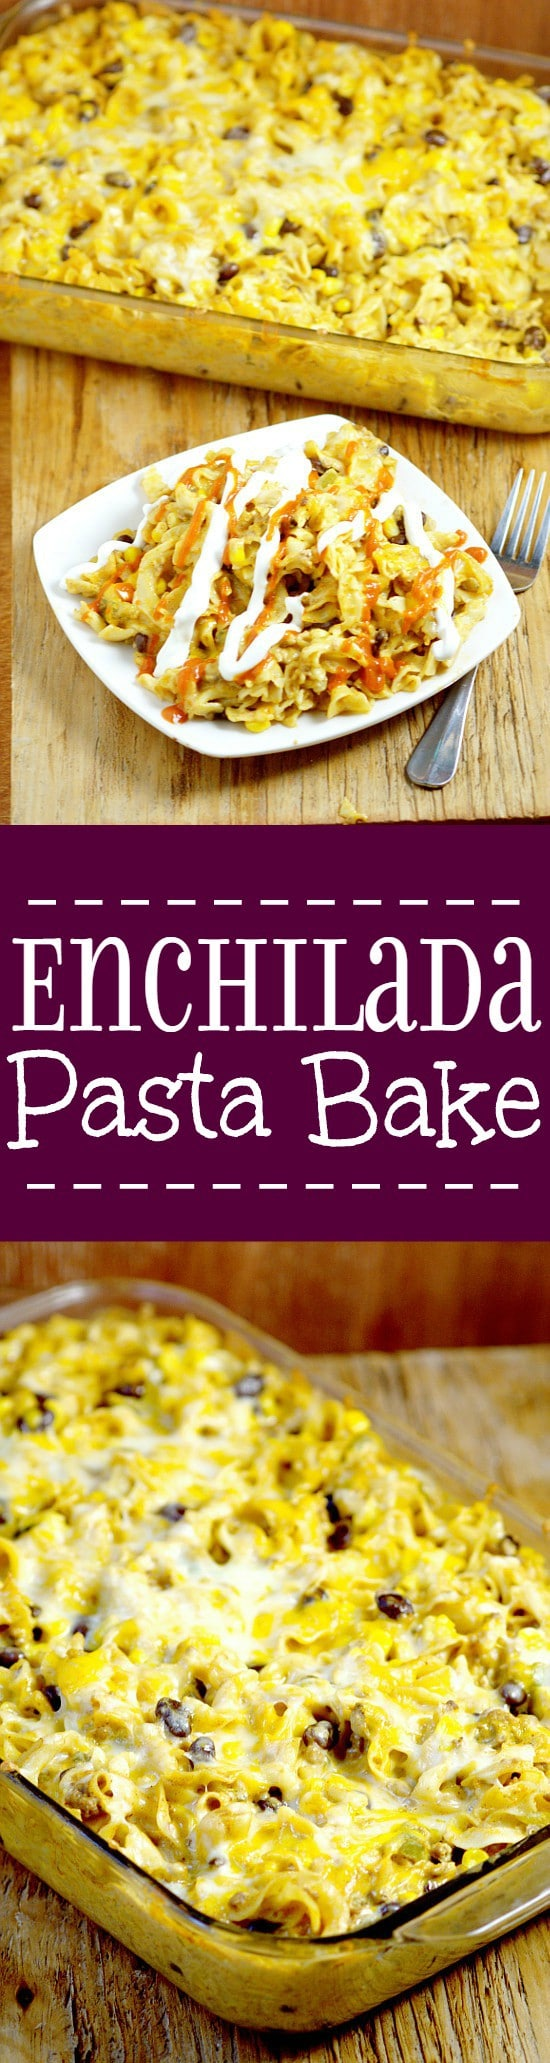 Enchilada Pasta Bake recipe is a delicious way to use up leftover taco meat and great for family dinner.  Noodles tossed with a creamy, cheesy, and slightly spicy sauce mixed with taco-seasoned ground beef, corn, and black beans. Perfect easy pasta recipe for family night!